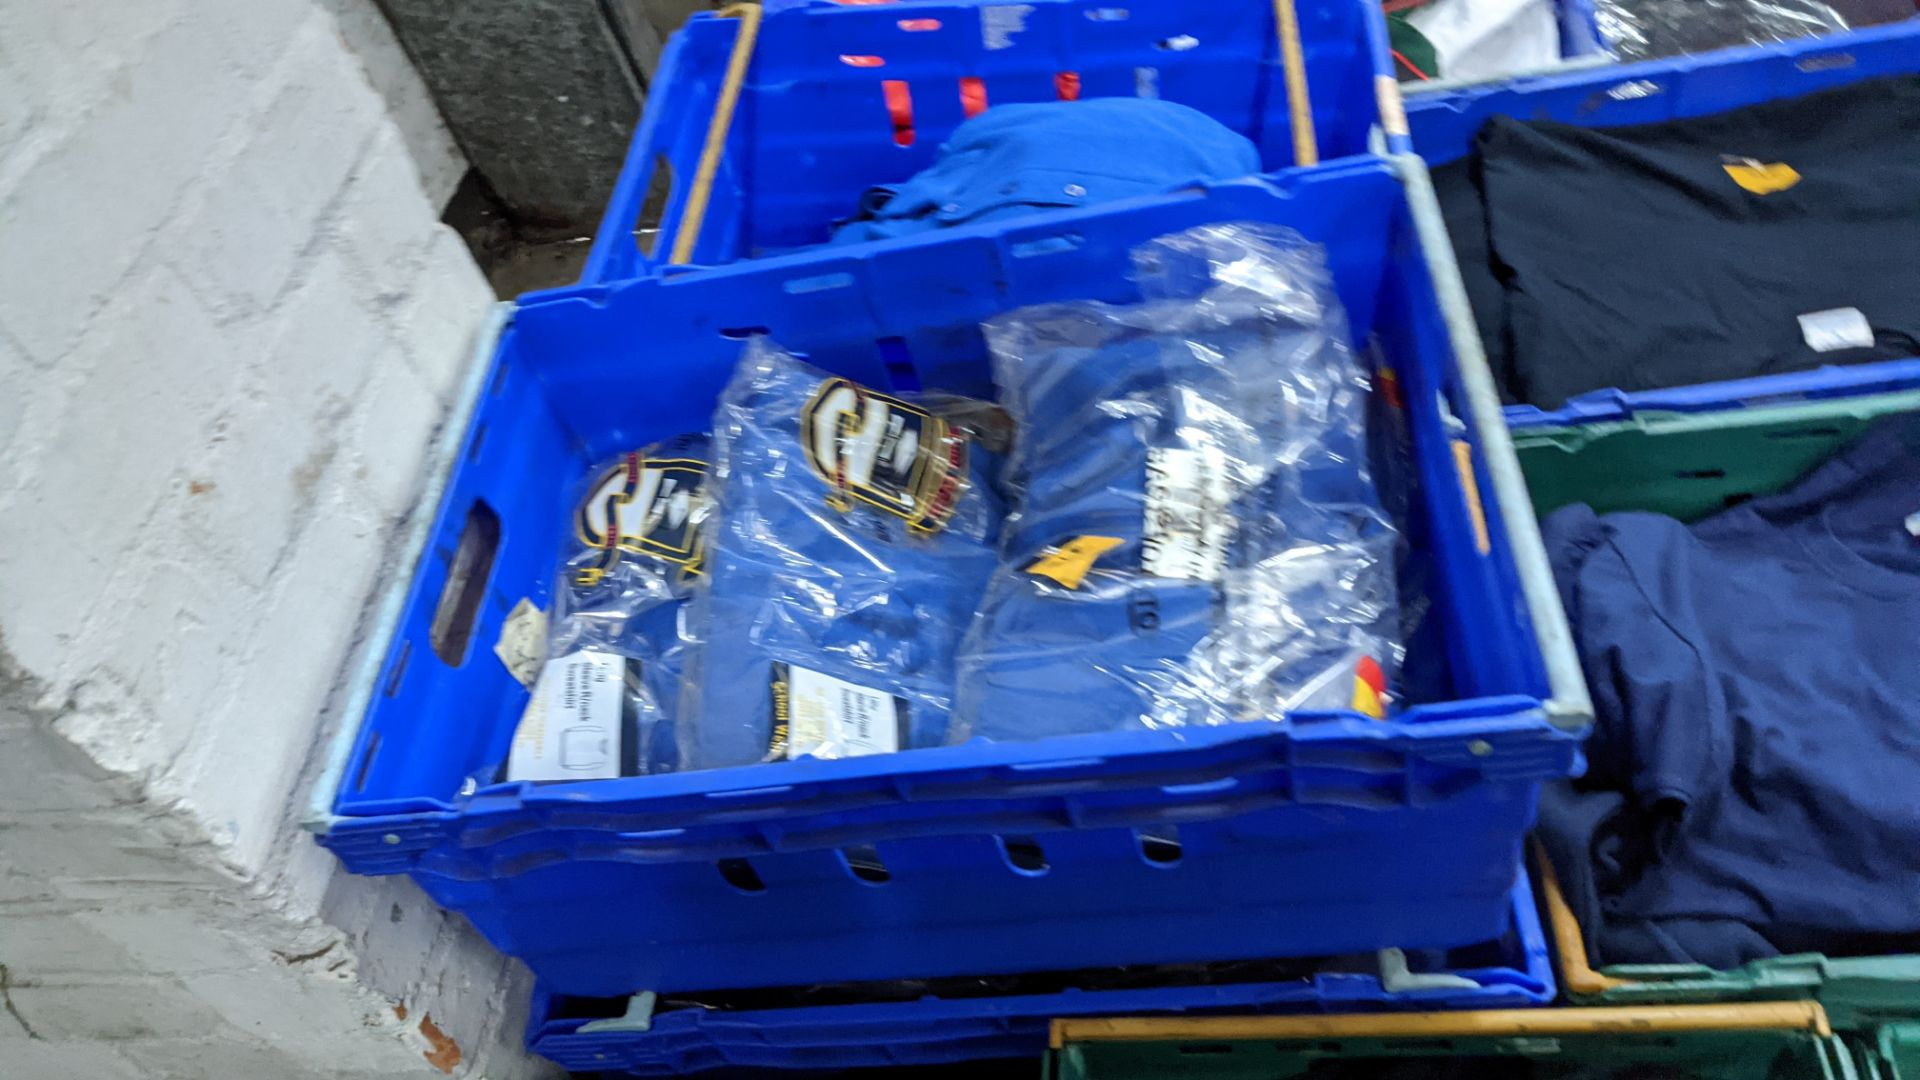 Approx 29 off royal blue children's sweatshirts (2 crates)